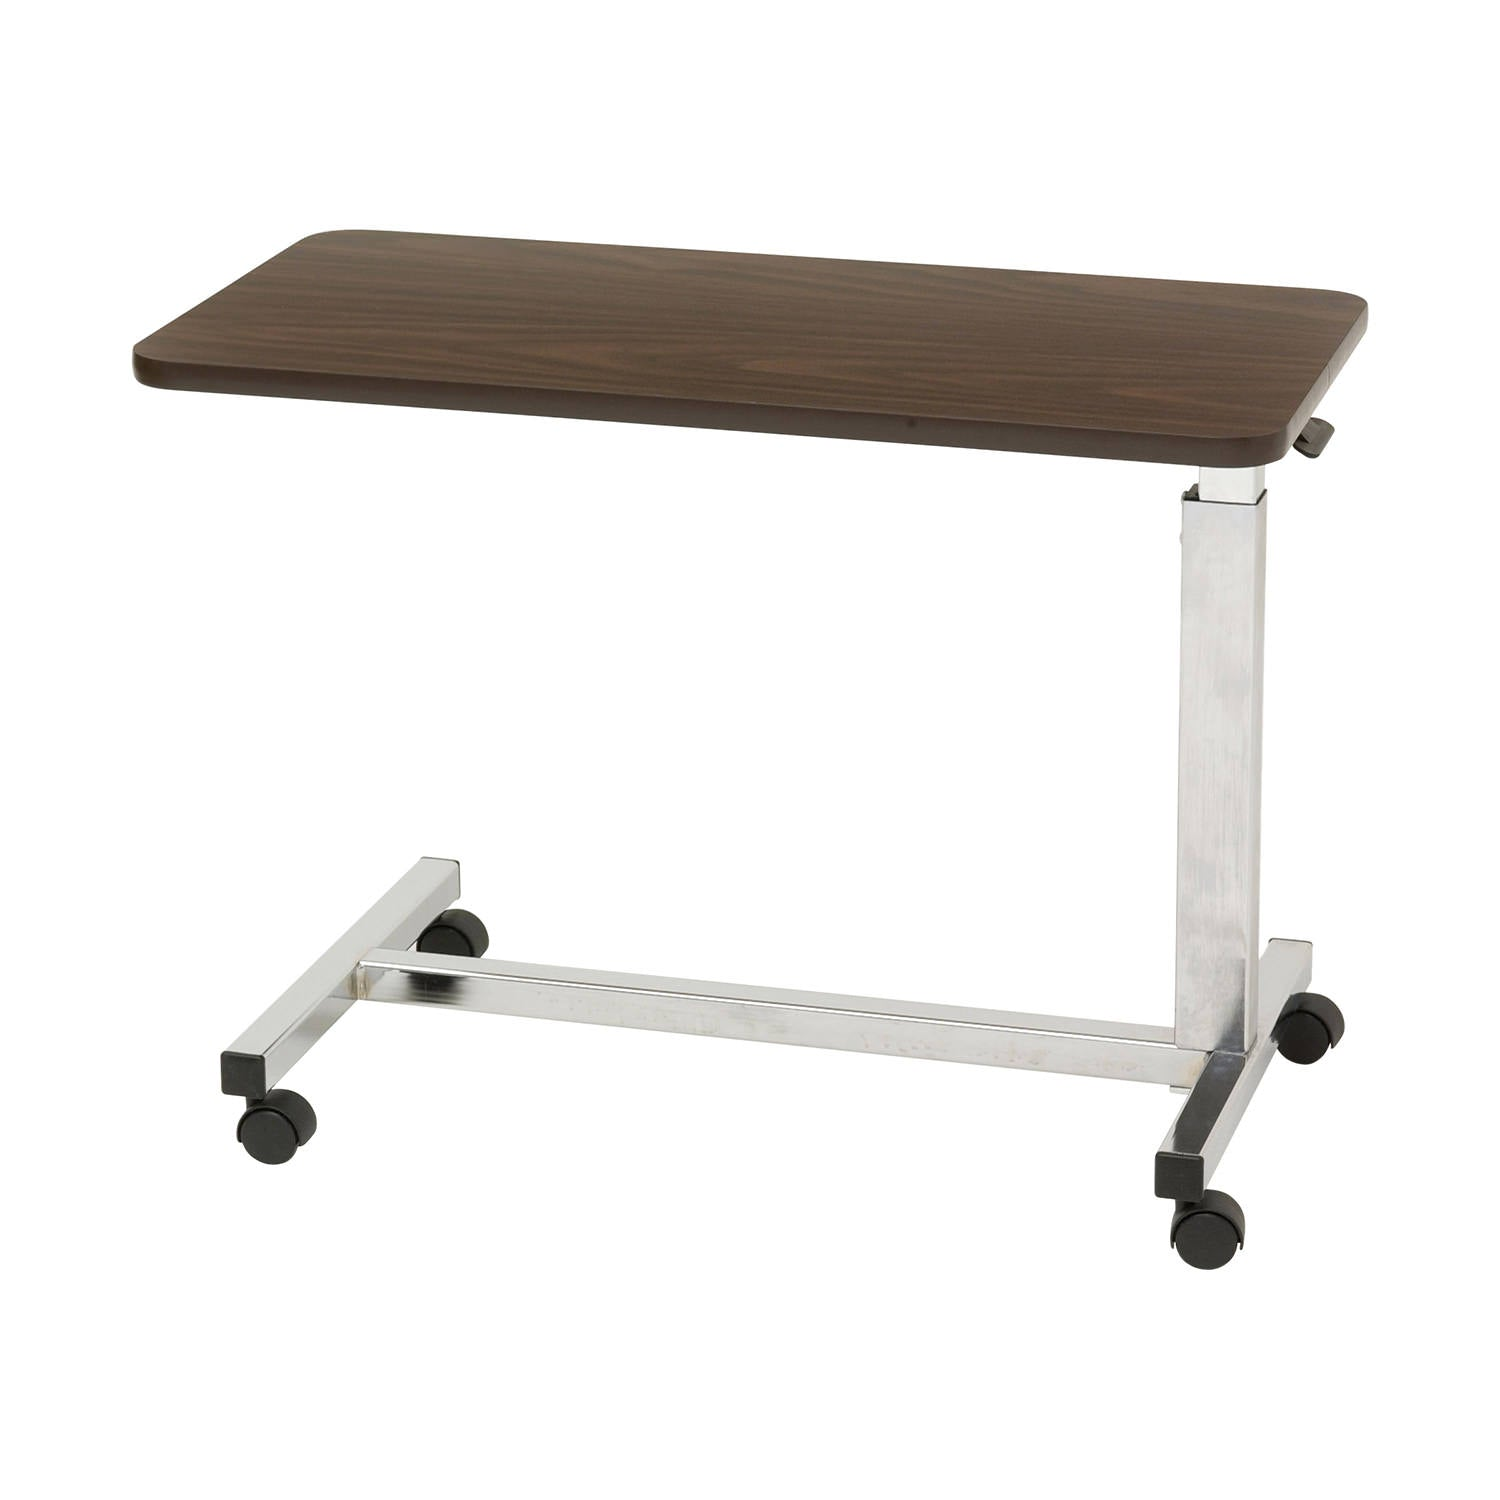 Drive Low-Bed Overbed Table